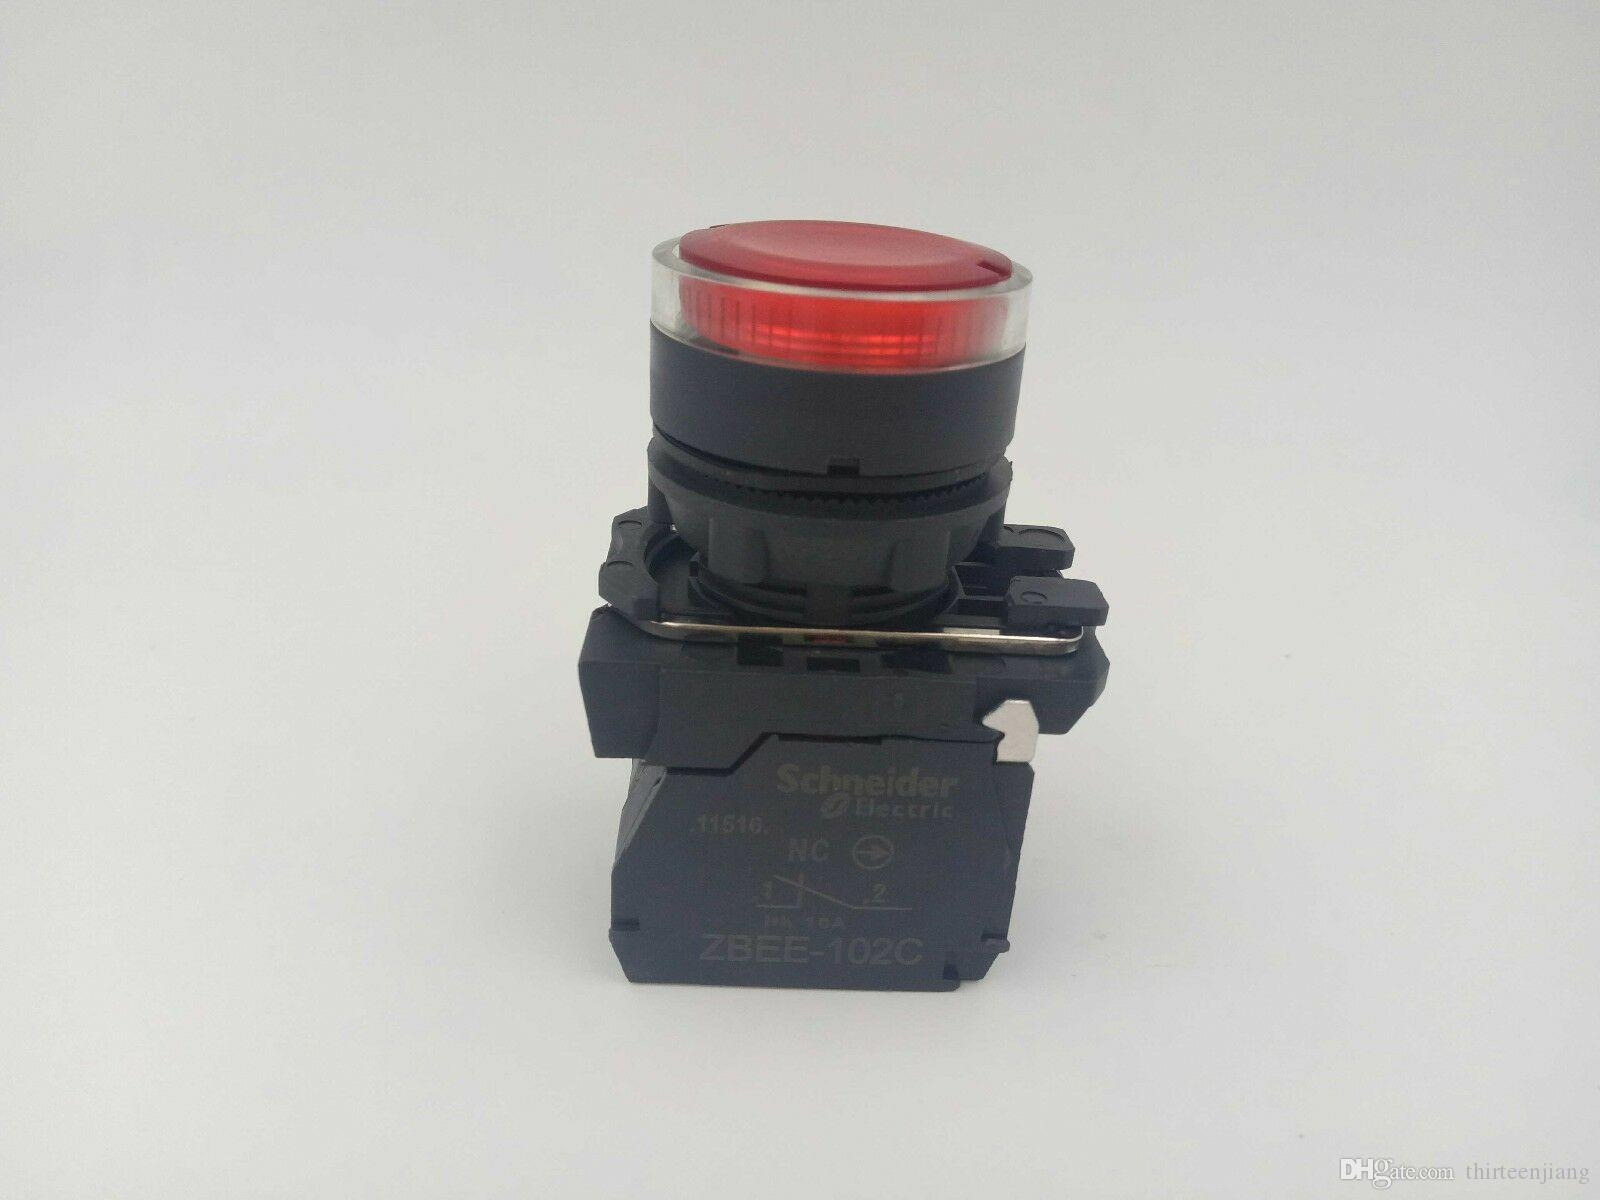 QTY 10 Per Lot Original Schneider red illuminated button XB5AW34M2C AC220V New In Box Free Expedited Shipping